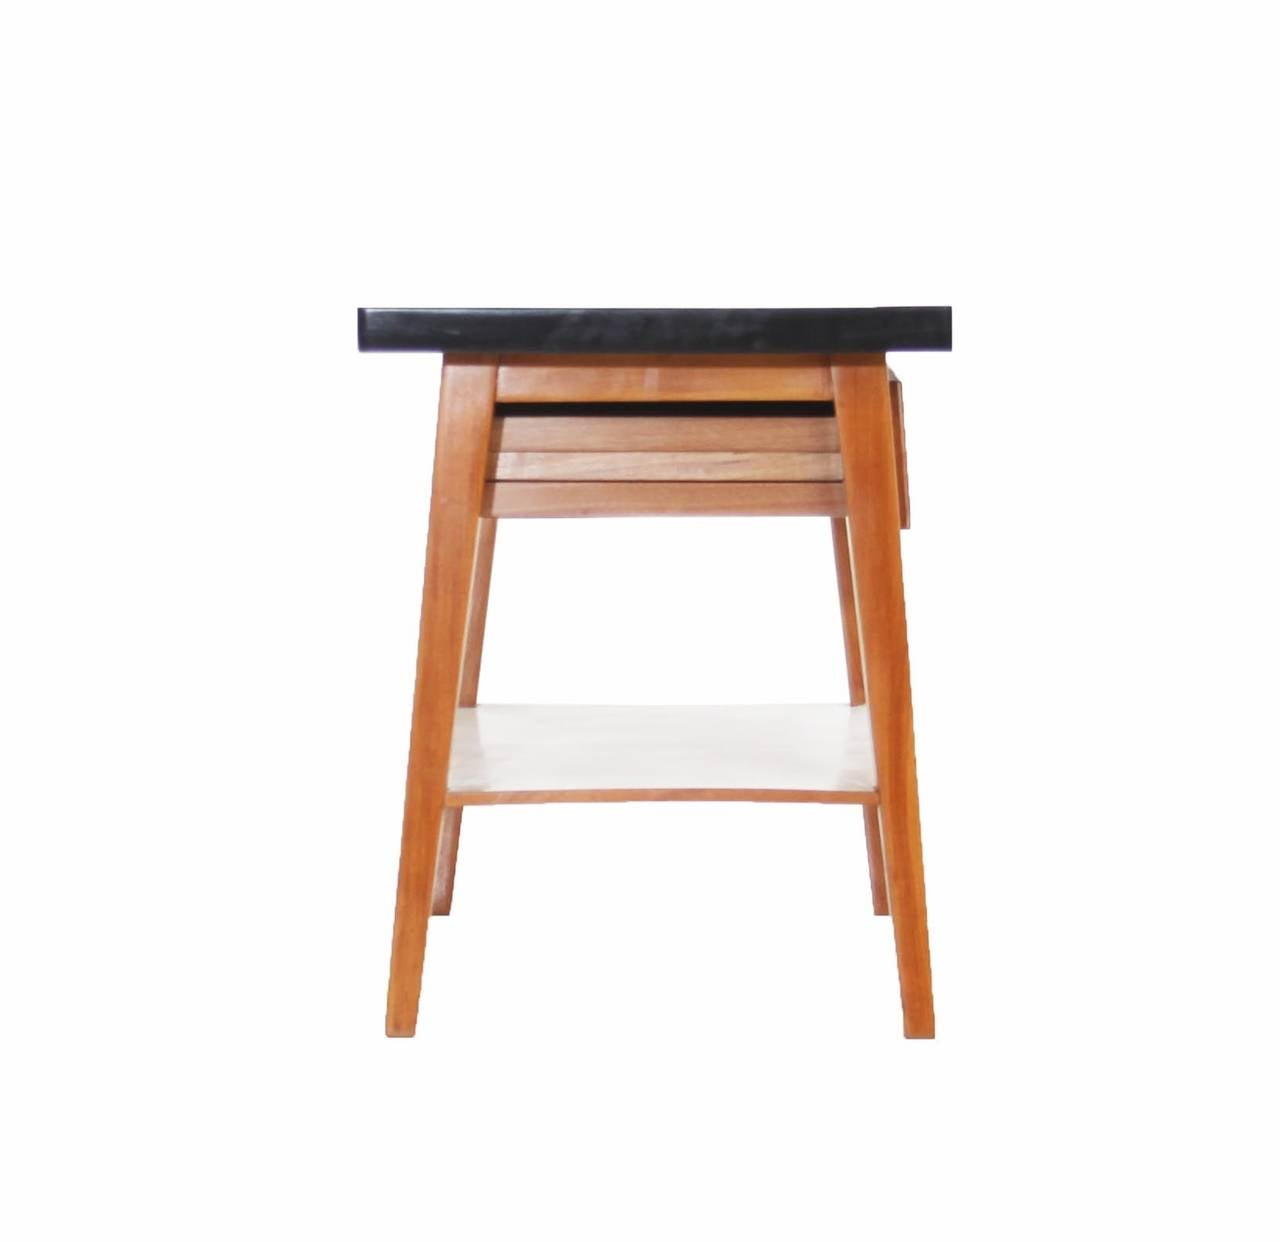 Pair of vintage brazilian wood and white formica side tables or night